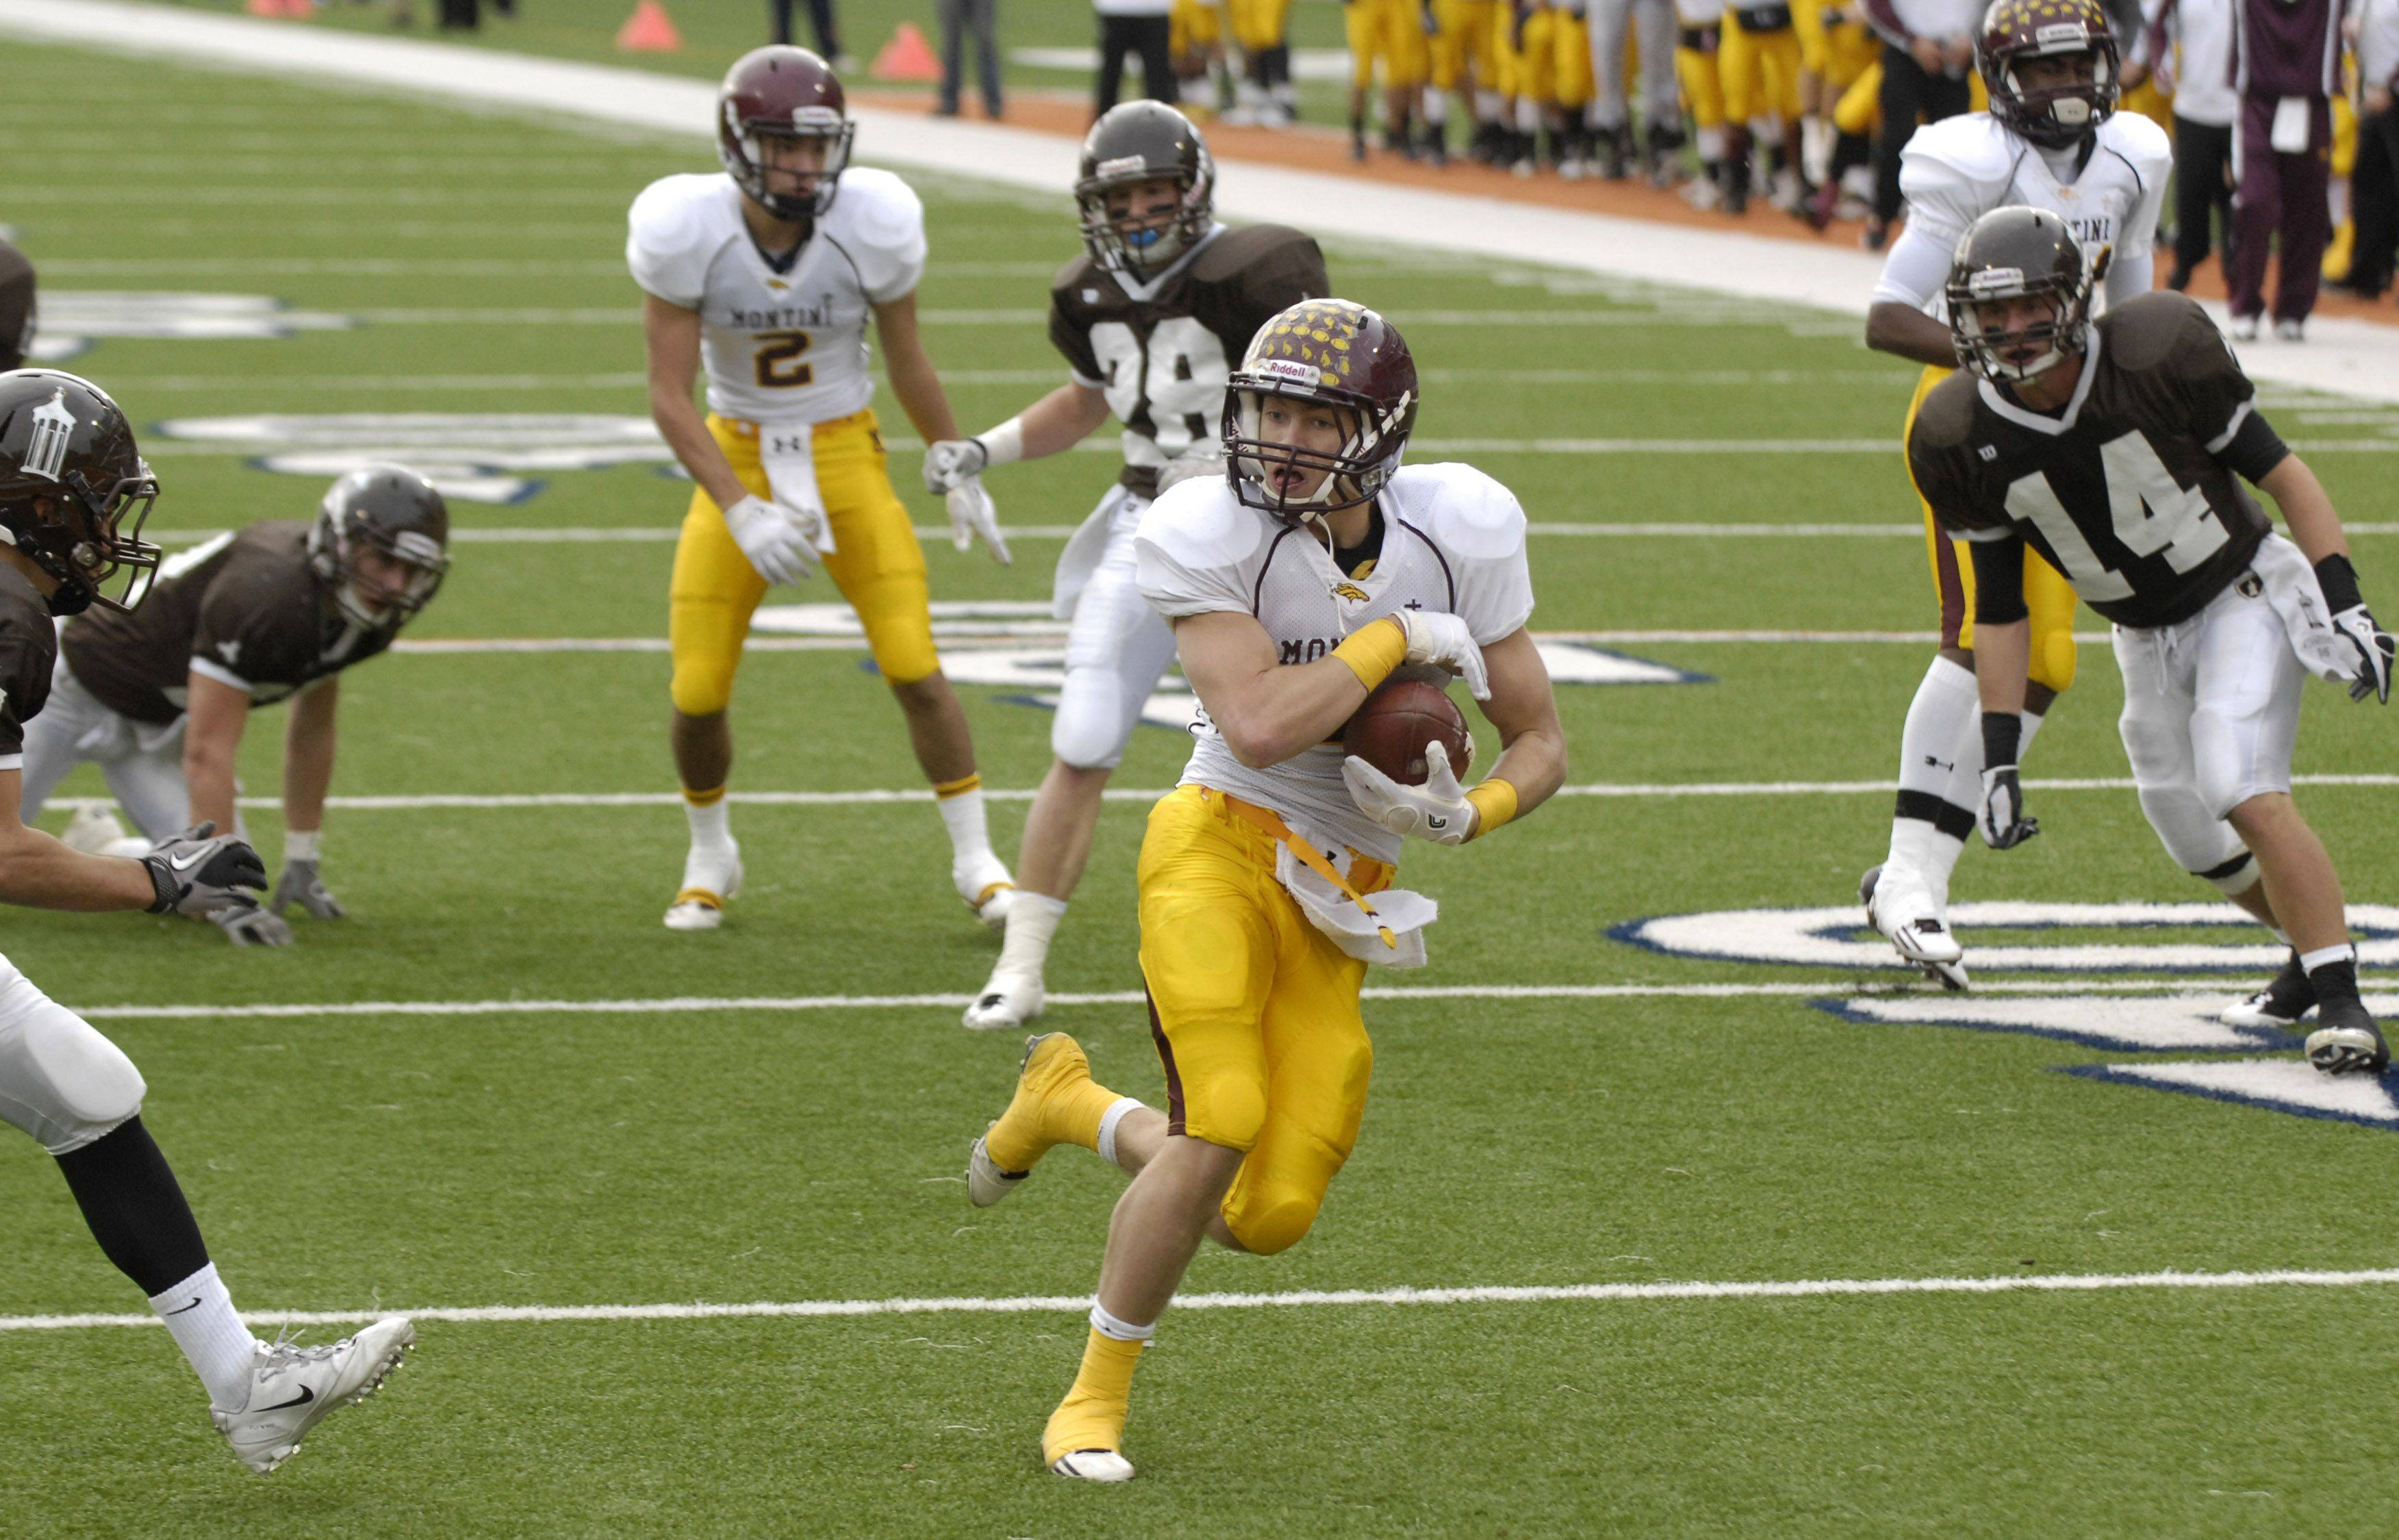 Joseph Borsellino scores Montini's second touchdown during the Class 5A state championship game in Champaign on Saturday.